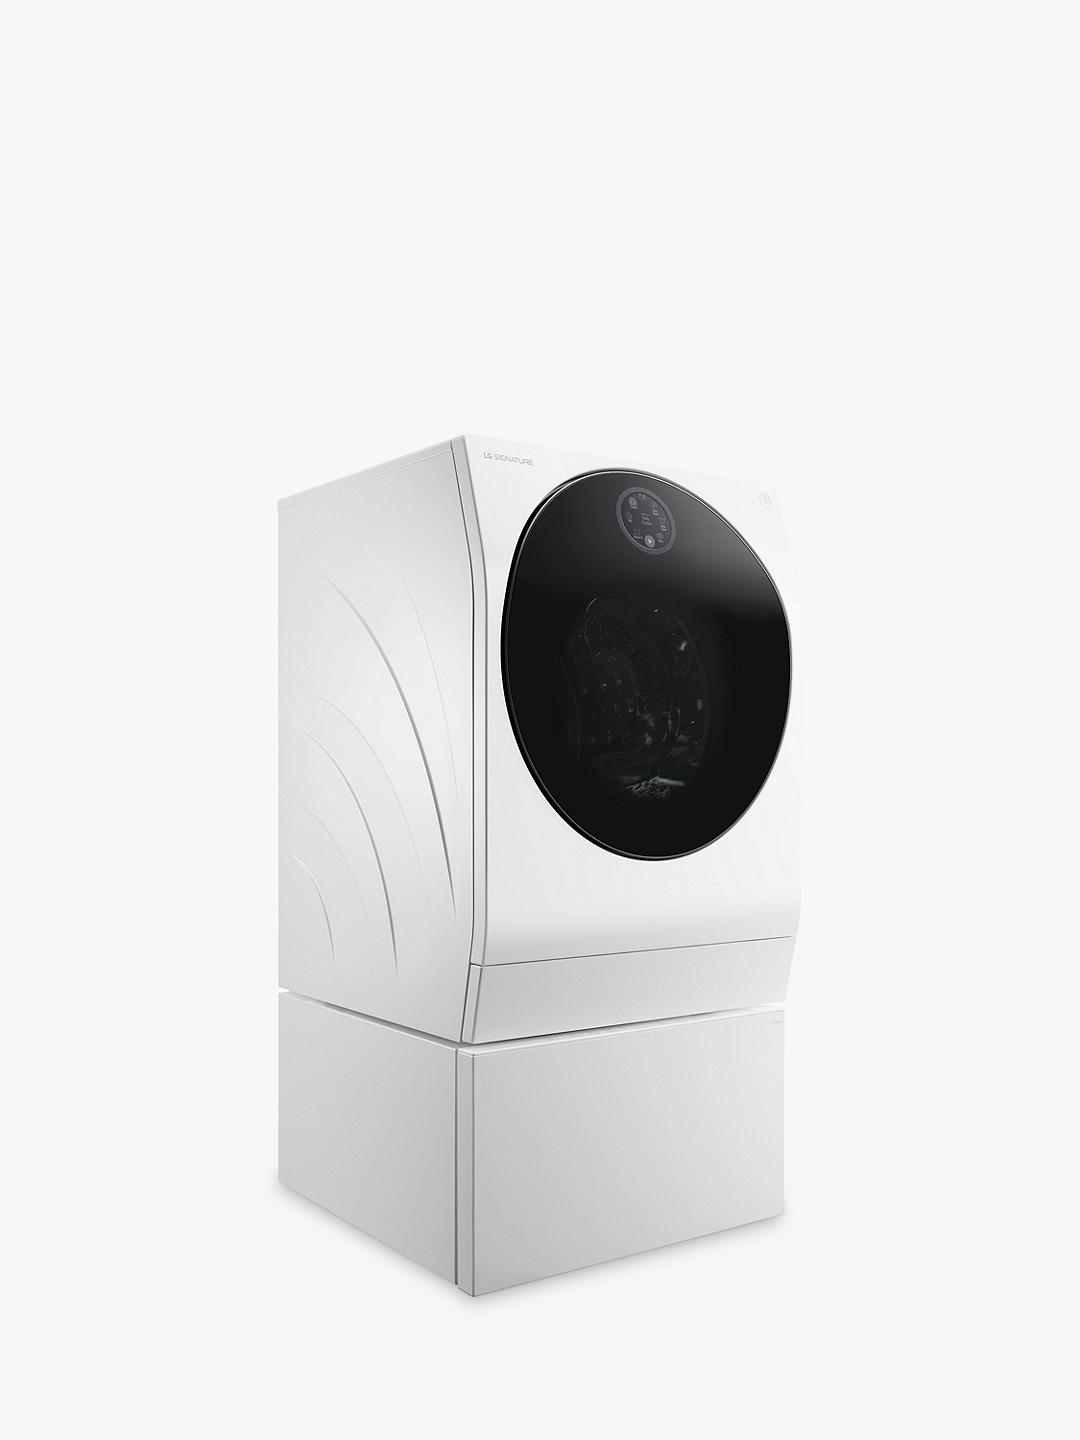 Buy LG SIGNATURE LSF/LST100 Freestanding Washing Machine, 14kg Load, 1600rpm Spin, A+++ Energy Rating, White Online at johnlewis.com